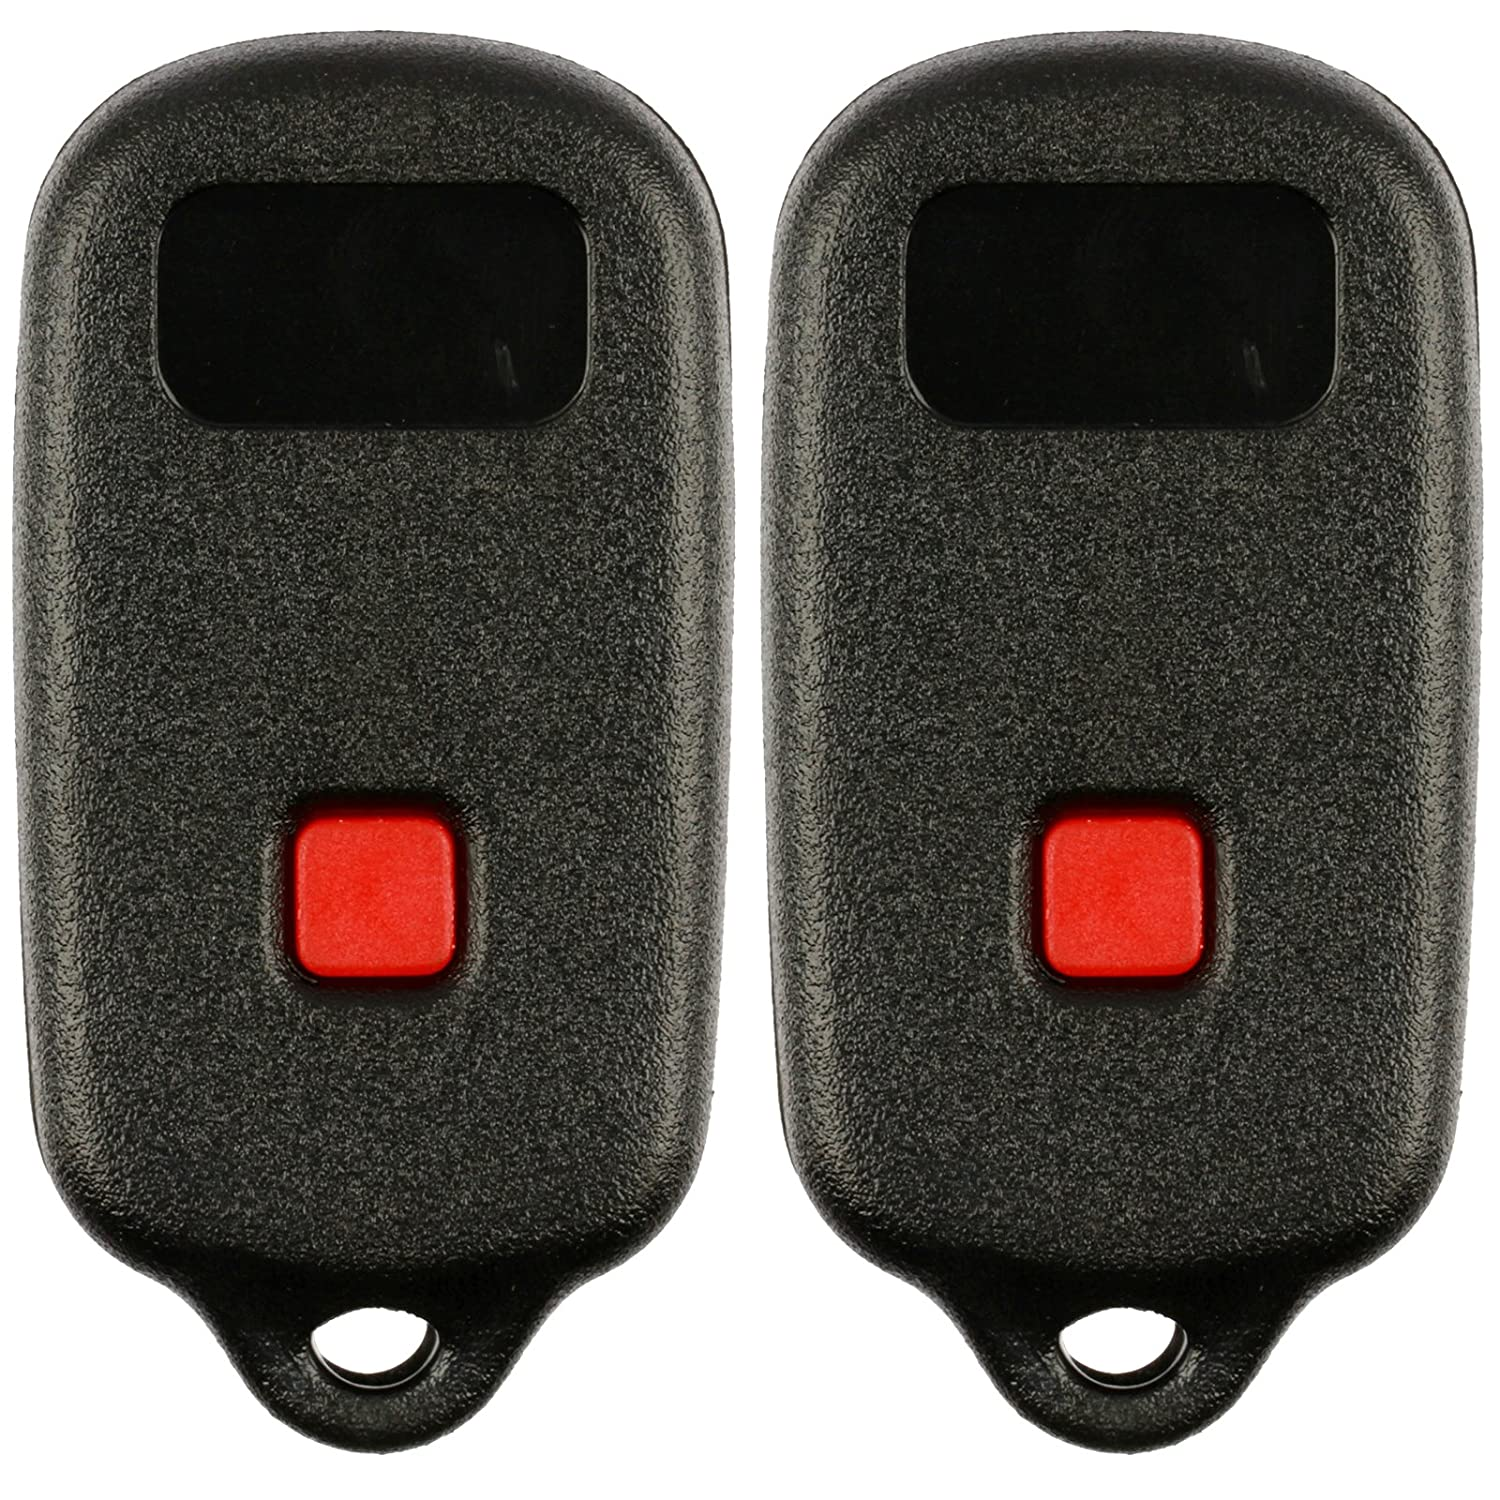 Pack of 2 HYQ1512Y HYQ12BBX KeylessOption Keyless Entry Remote Control Car Key Fob Replacement for HYQ12BAN